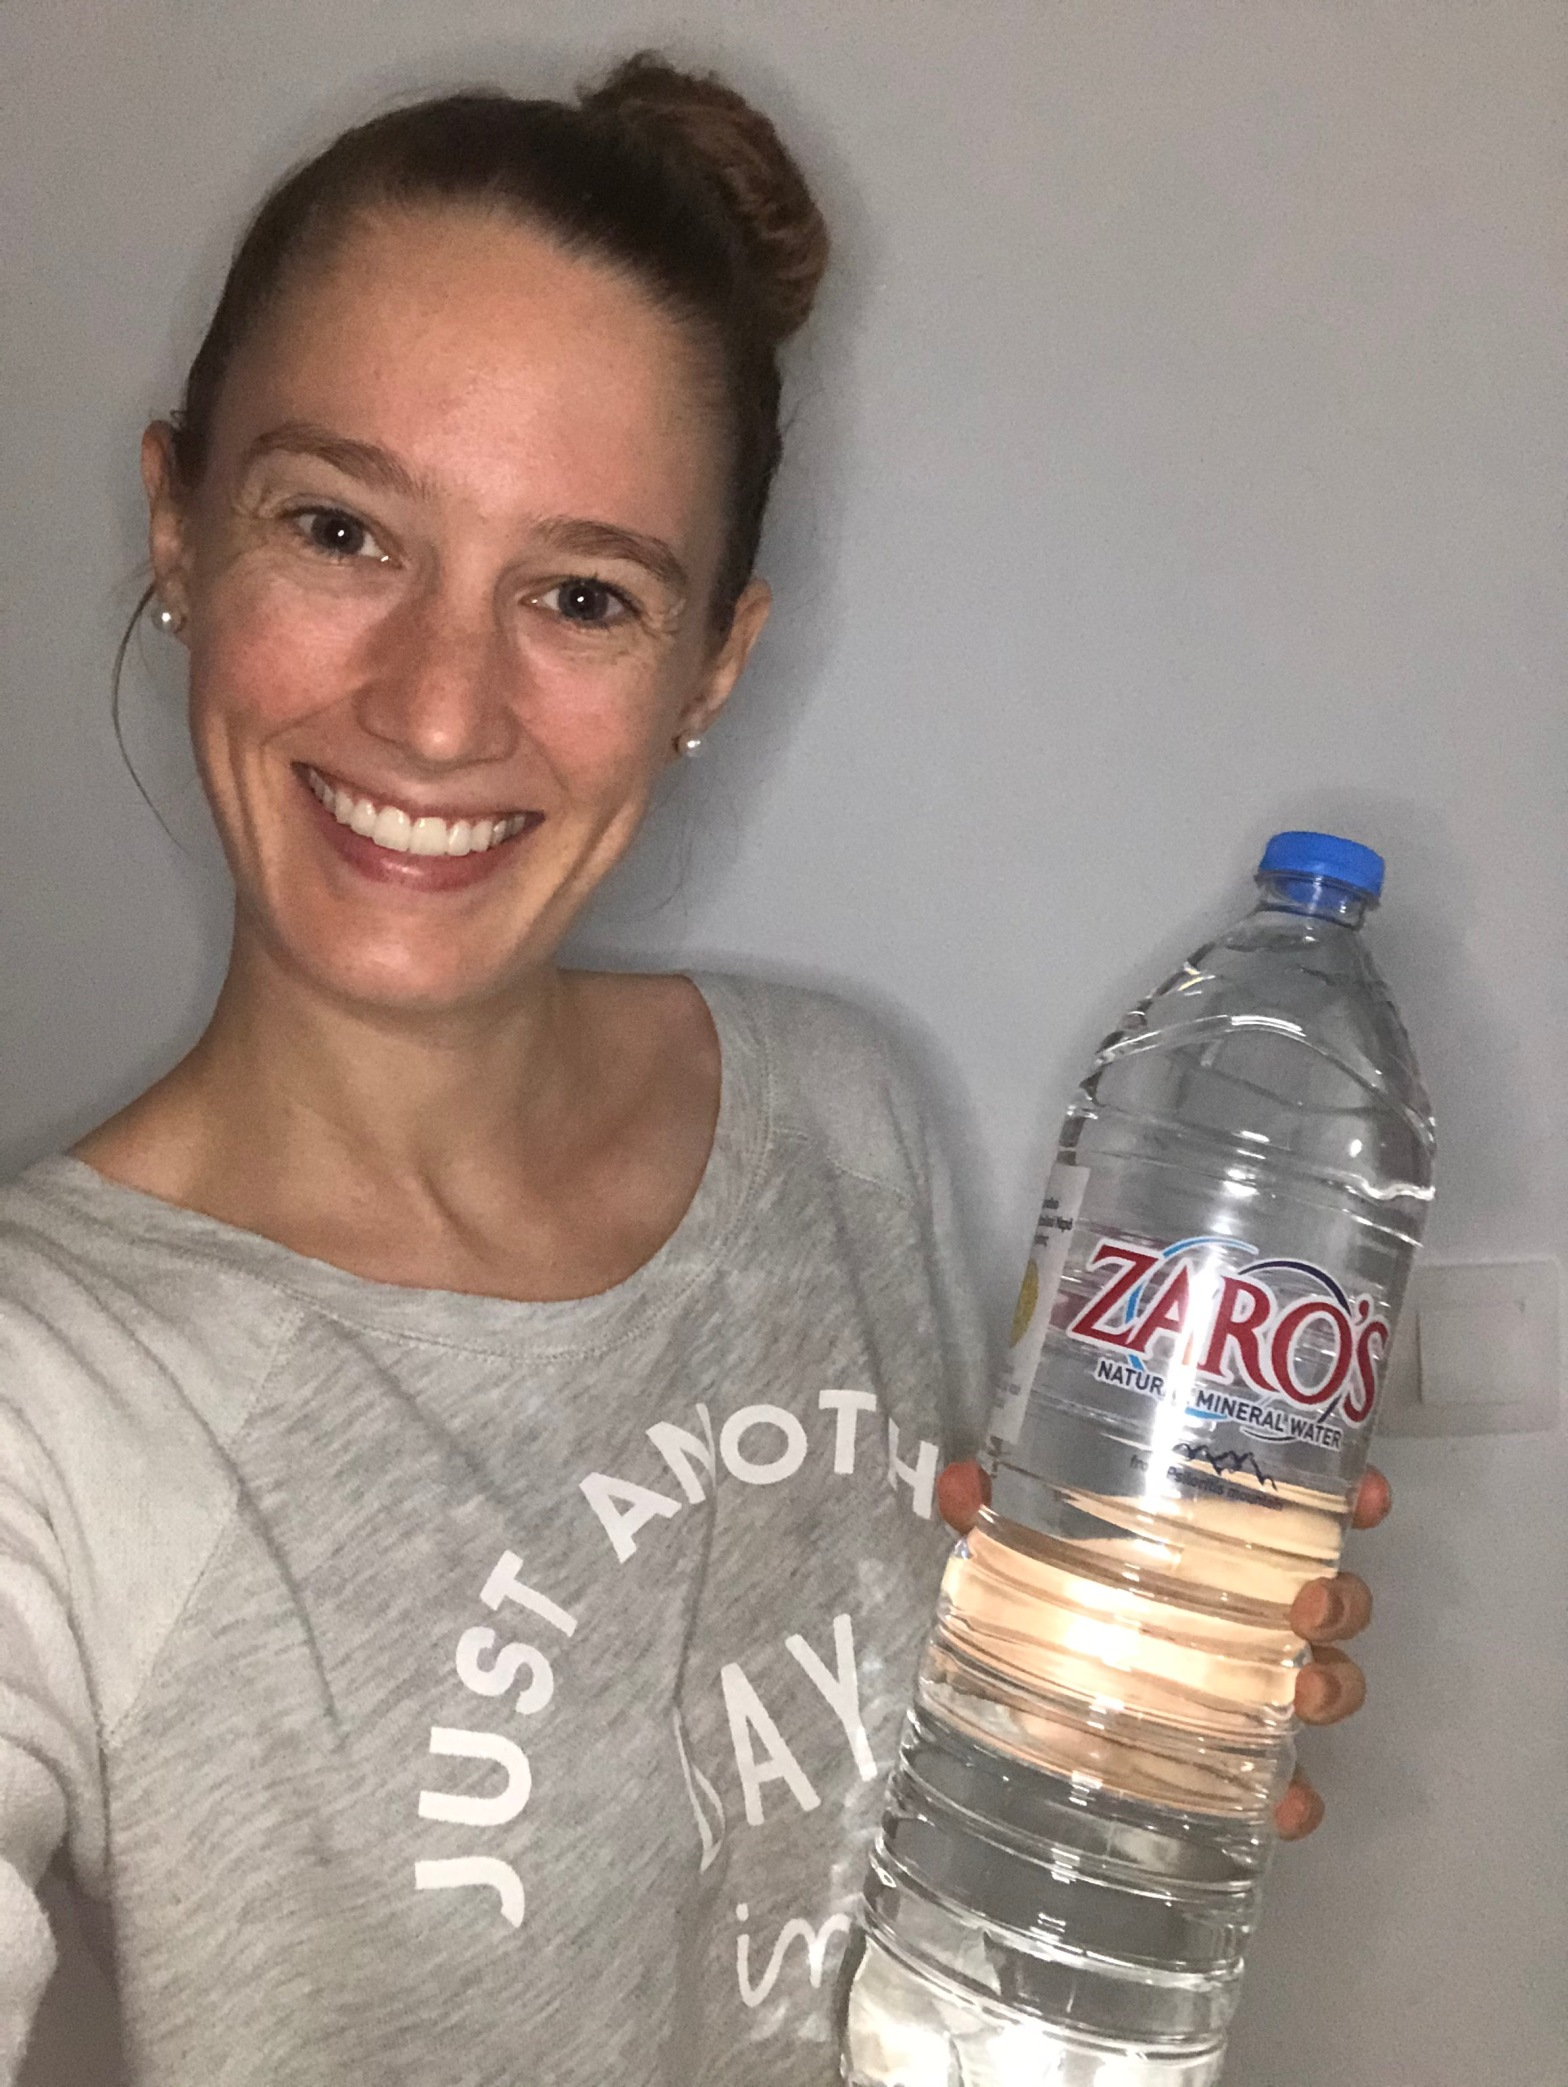 It's time to drink more water!